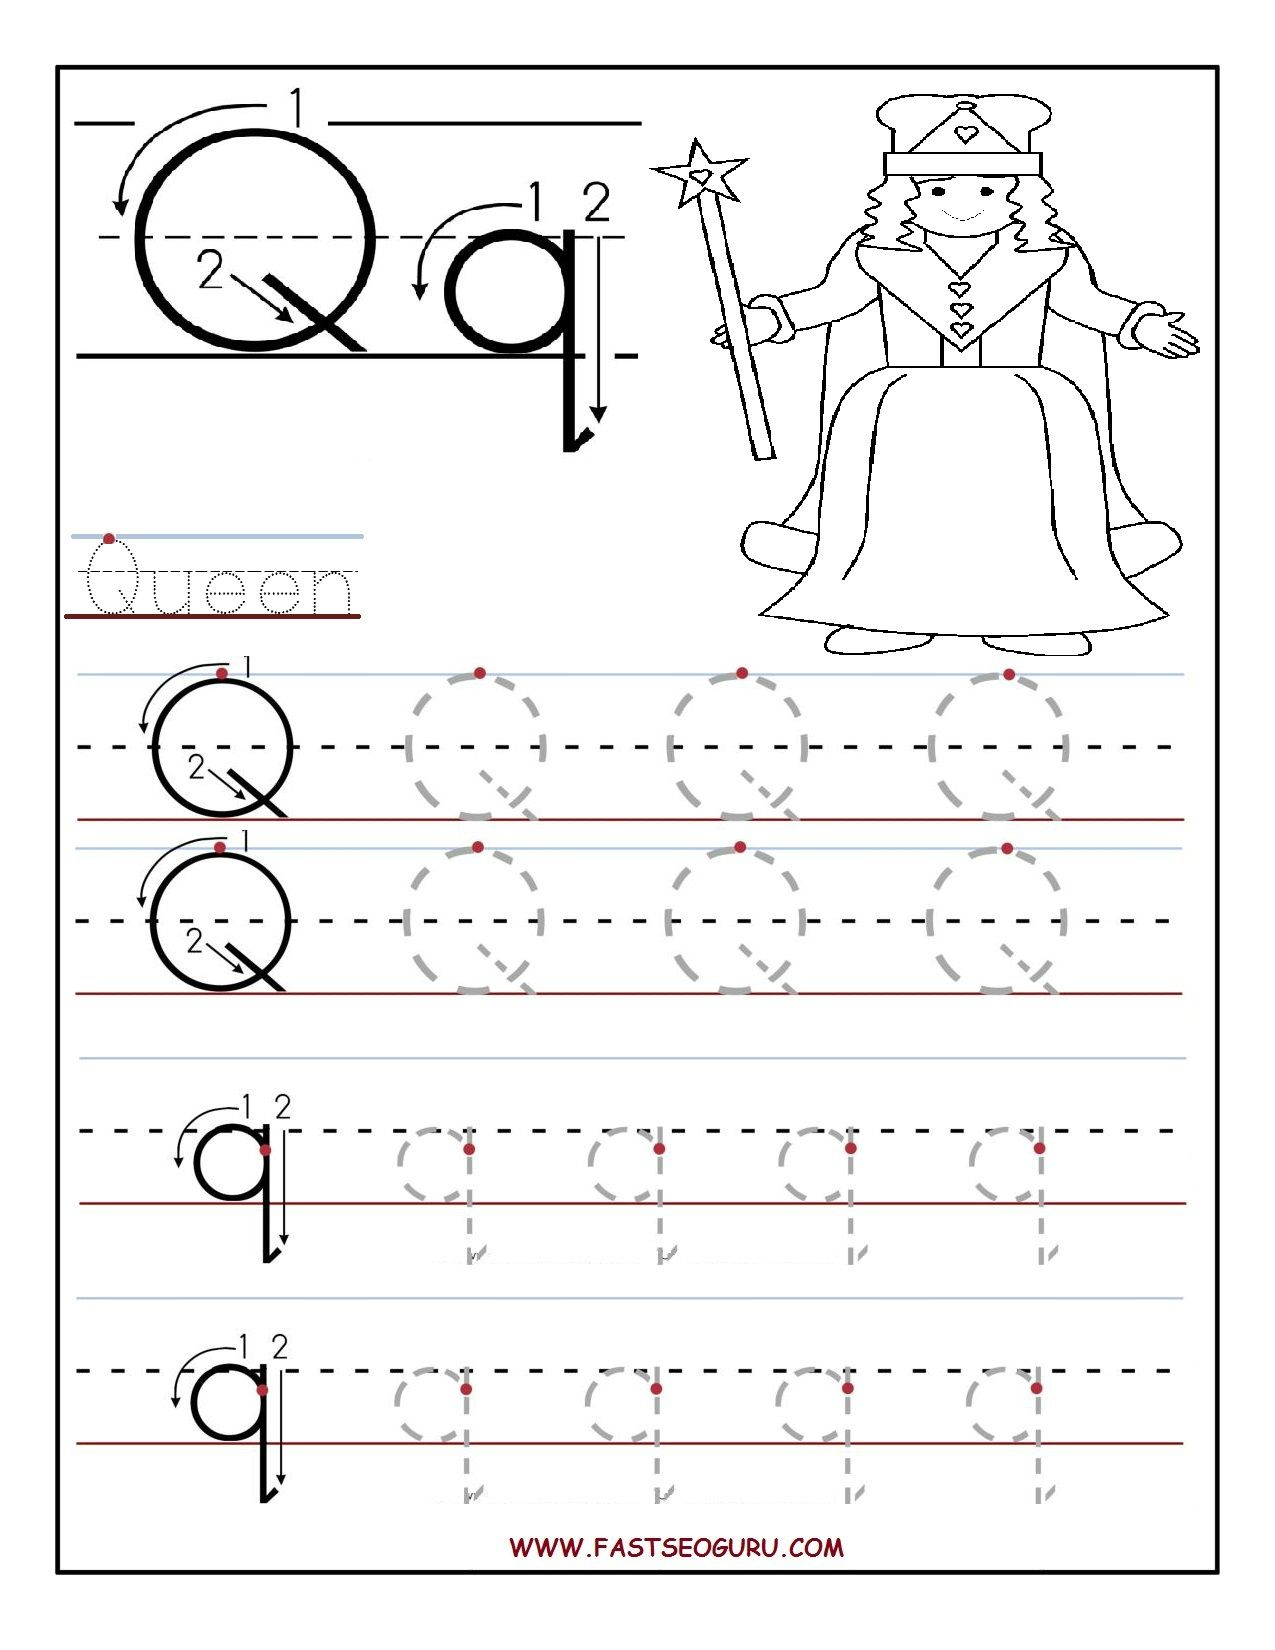 Printable letter Q tracing worksheets for preschool | Word work ...